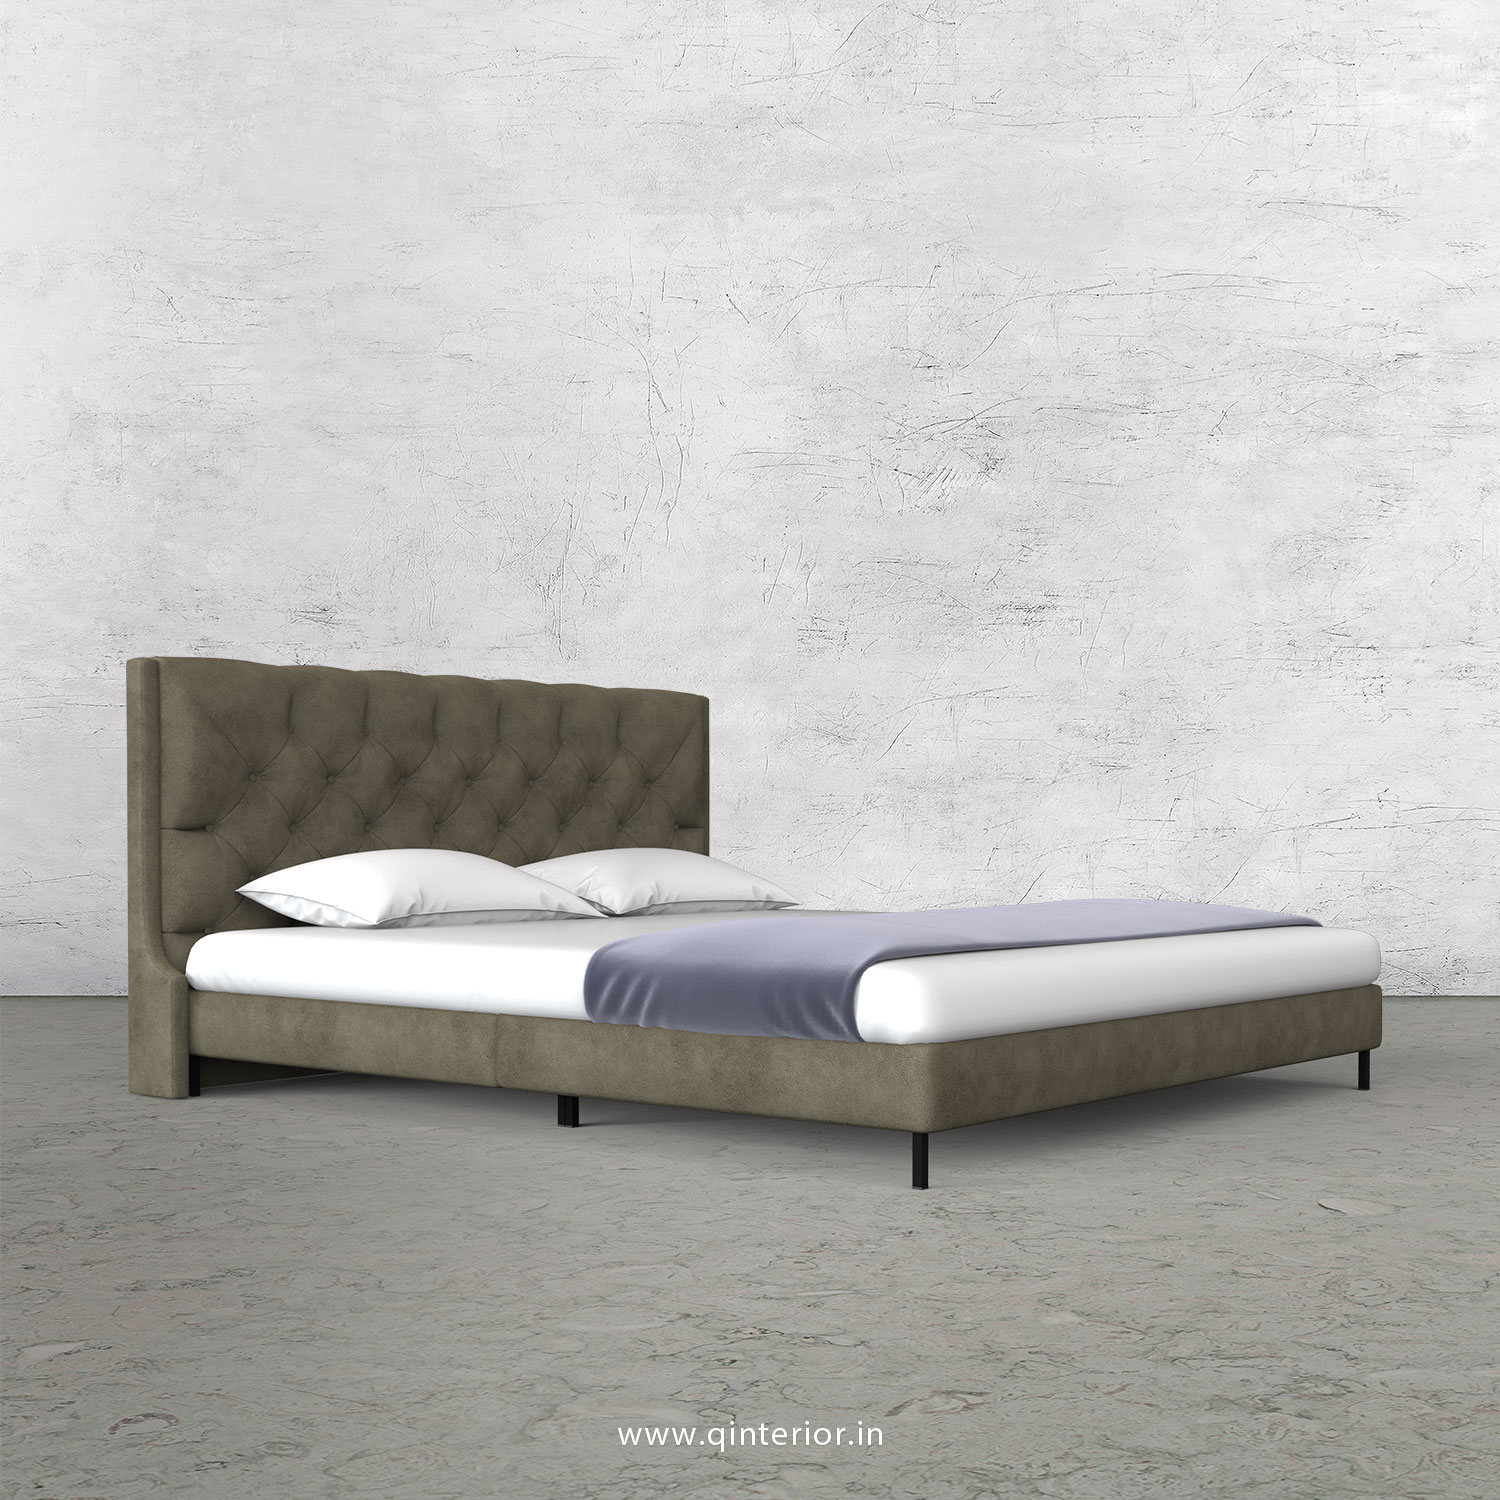 Scorpius King Size Bed in Fab Leather Fabric - KBD003 FL03